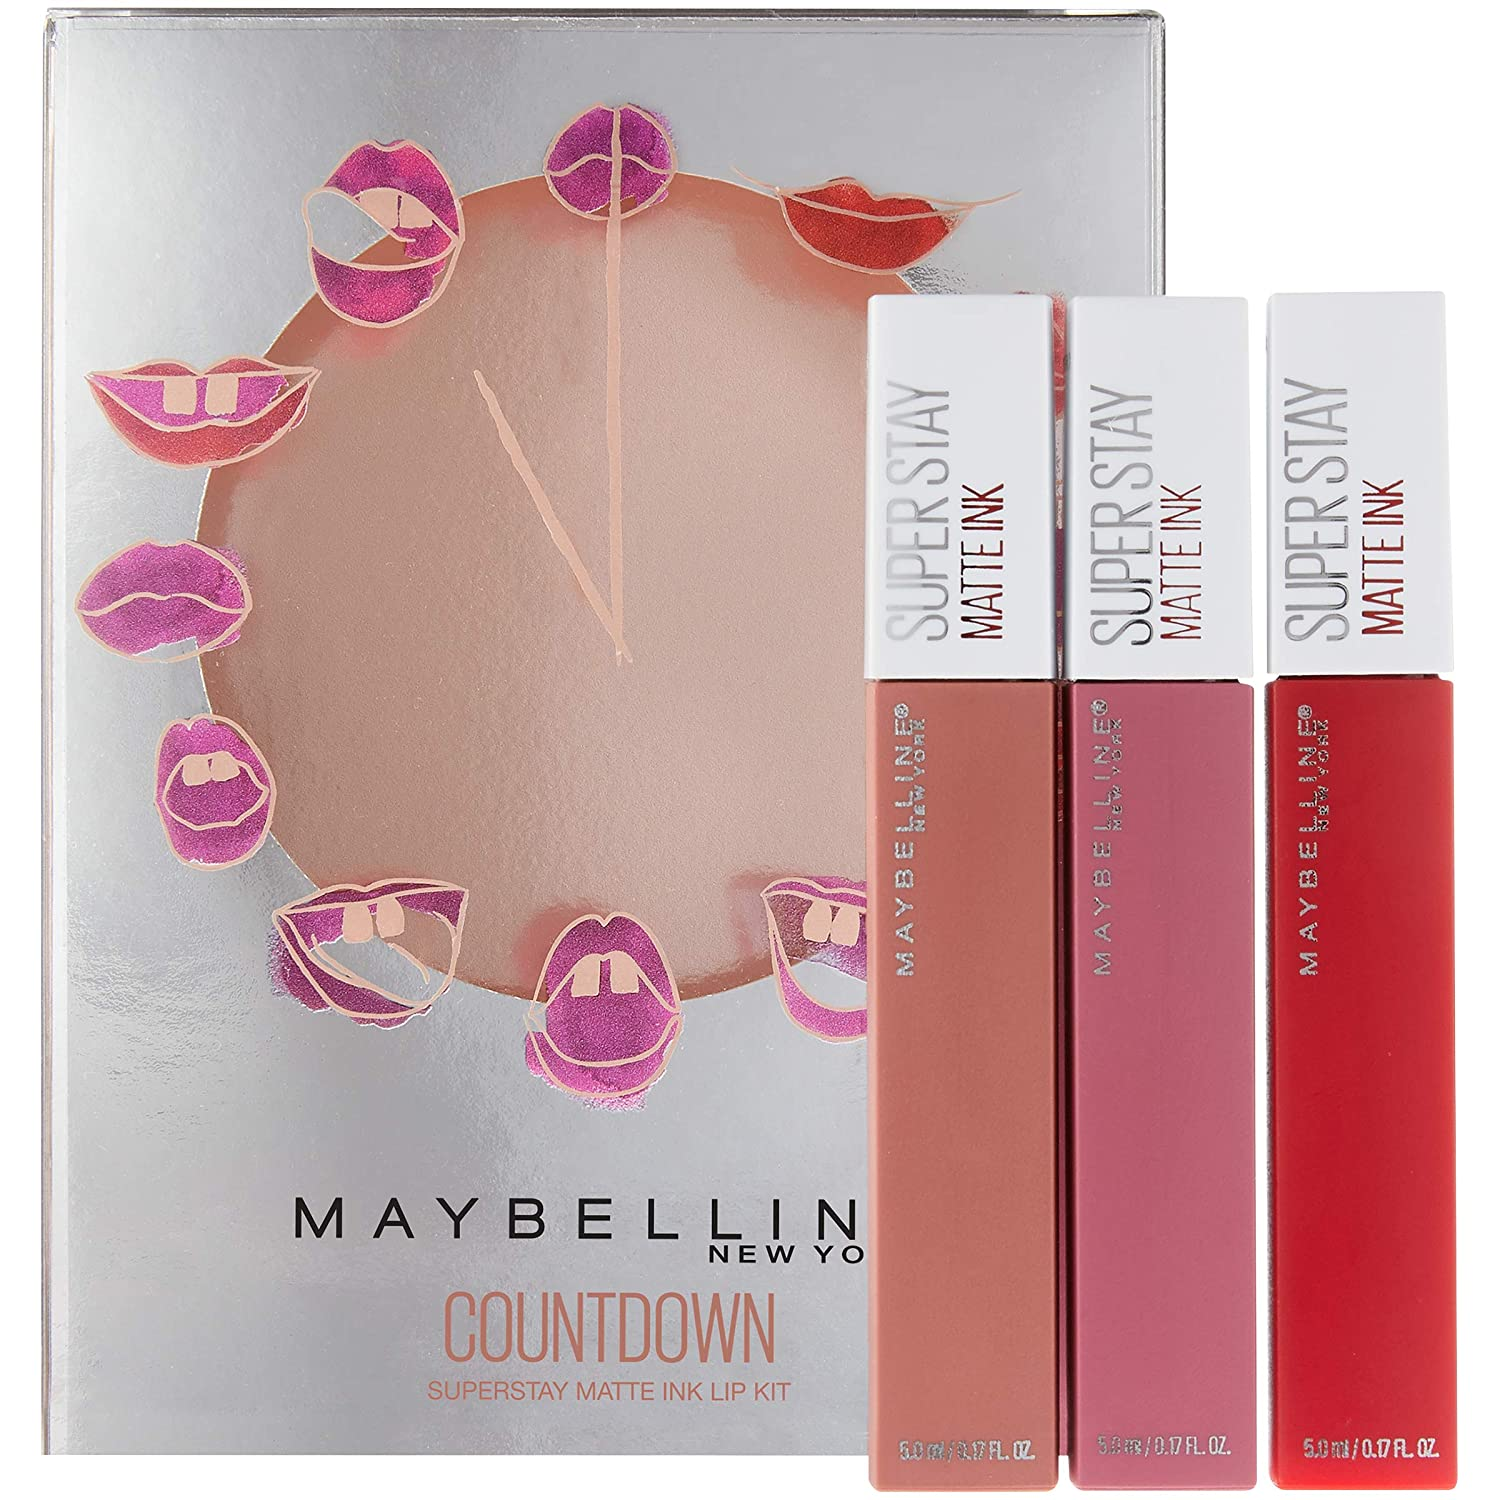 25f19c6ce1d Amazon.com : Maybelline New York Superstay Matte Ink Liquid Lipstick Makeup  Holiday Kit, Lover/Pioneer/Seductress : Beauty